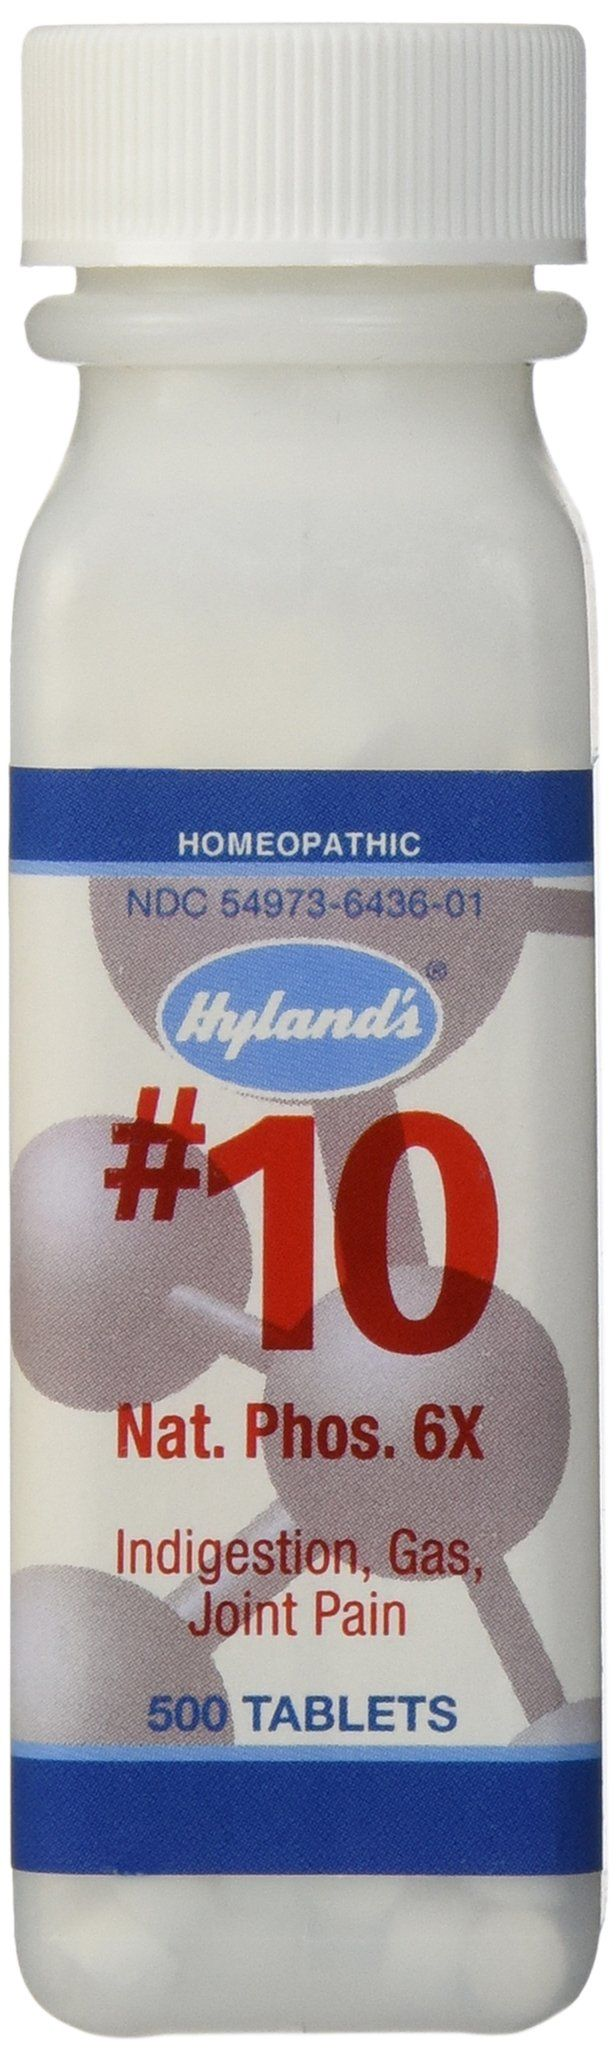 Hyland's Cell Salts #10 Natrum Phosphoricum 6X Tablets, Natural Homeopathic Relief of Indigestion, Gas, and Joint Pain, 500 Count